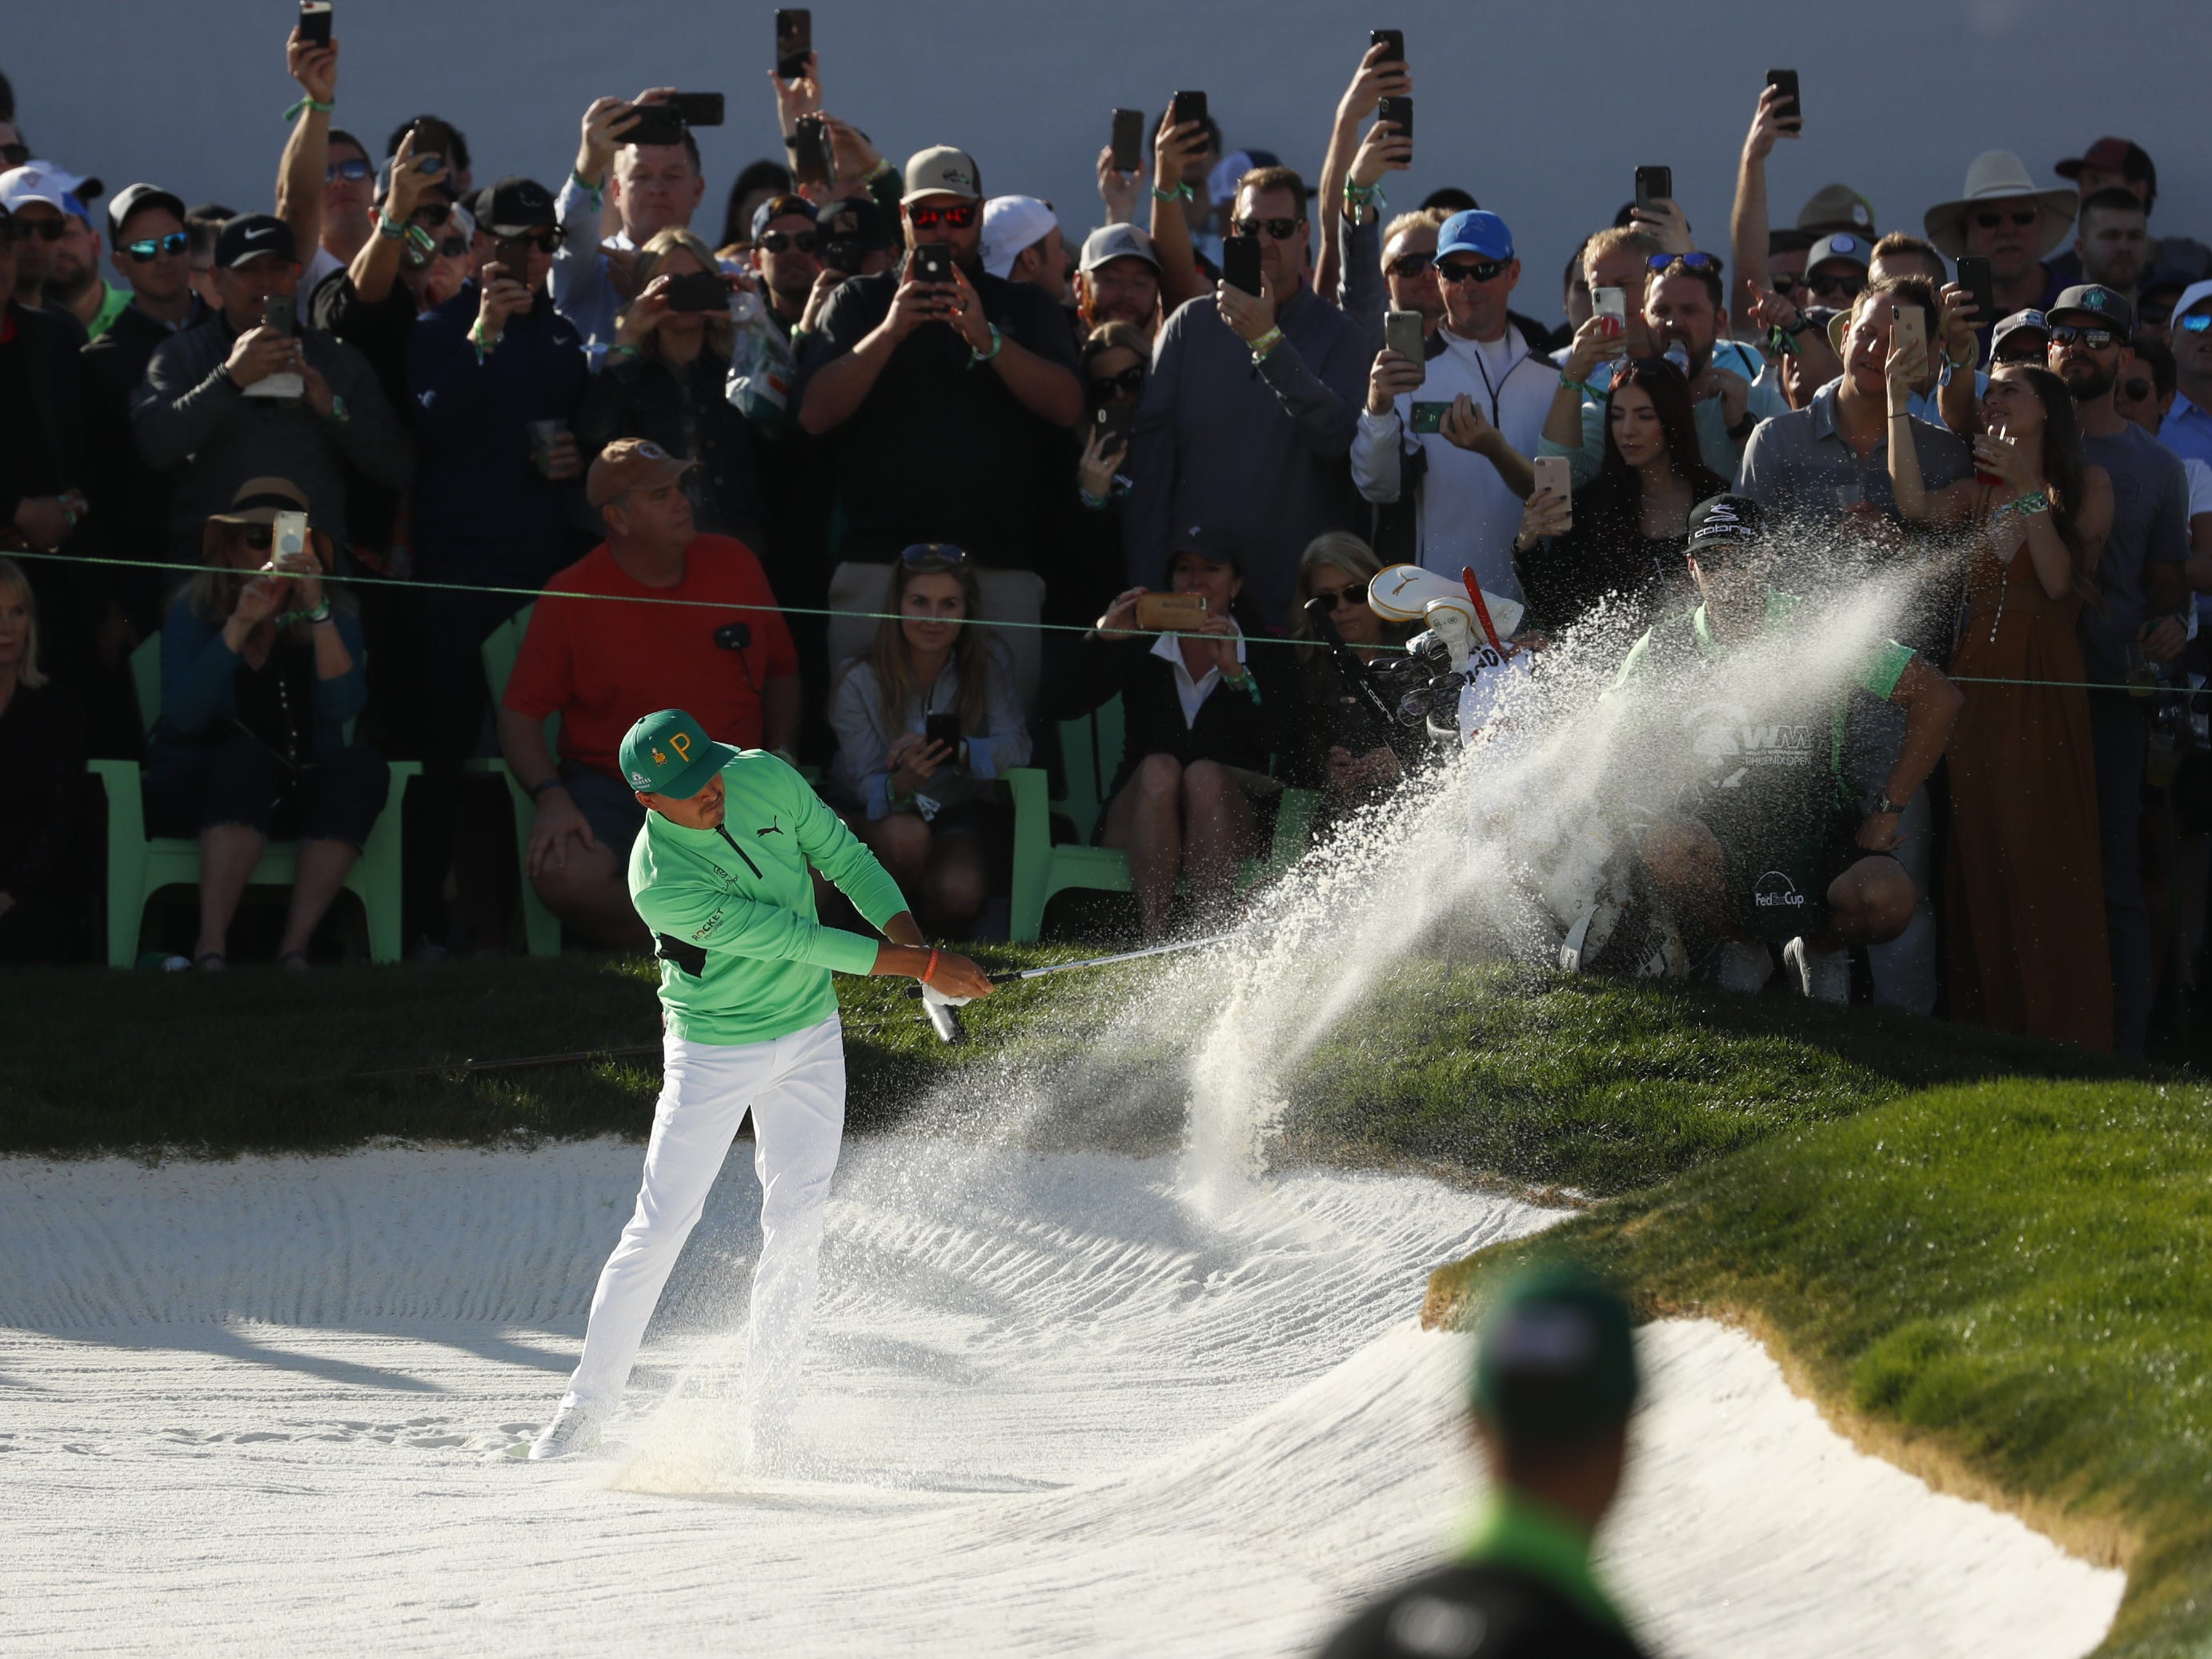 Rickie Fowler hits from a fairway bunker on the 18th hole during the third round of the Waste Management Phoenix Open at TPC Scottsdale in Scottsdale, Ariz. on February 2, 2019.